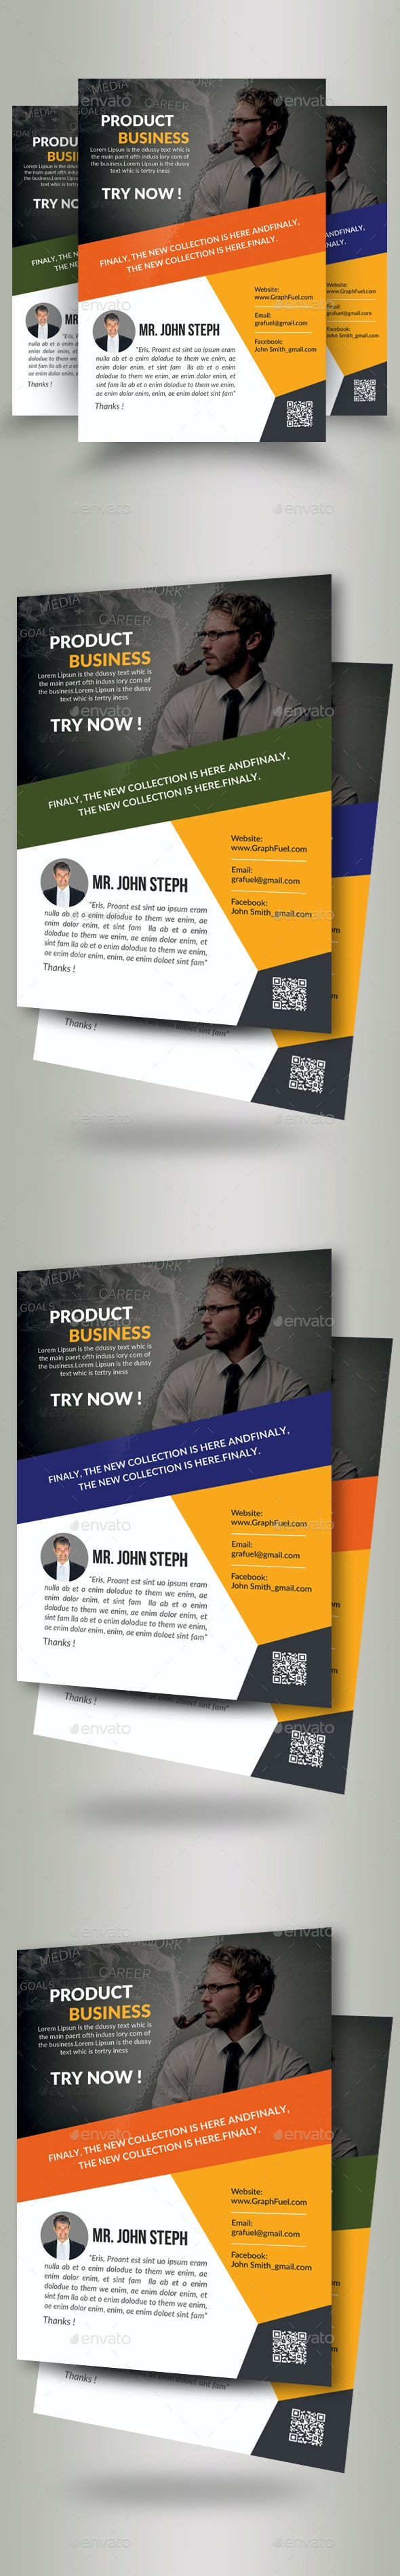 Employment Agency Business Flyer Template - Corporate Flyers